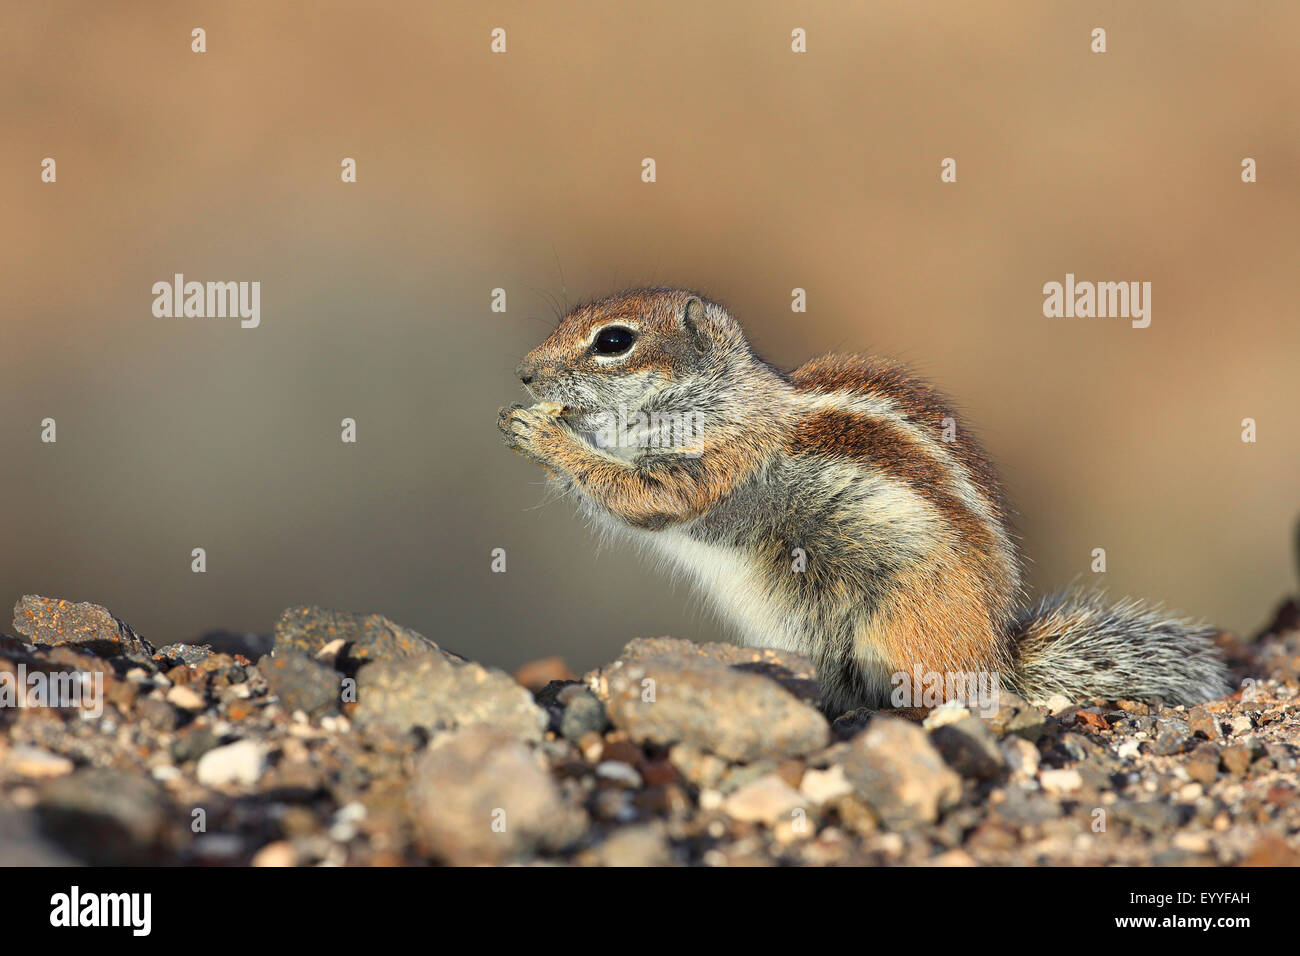 barbary ground squirrel, North African ground squirrel (Atlantoxerus getulus), sits on the ground and is eating, - Stock Image